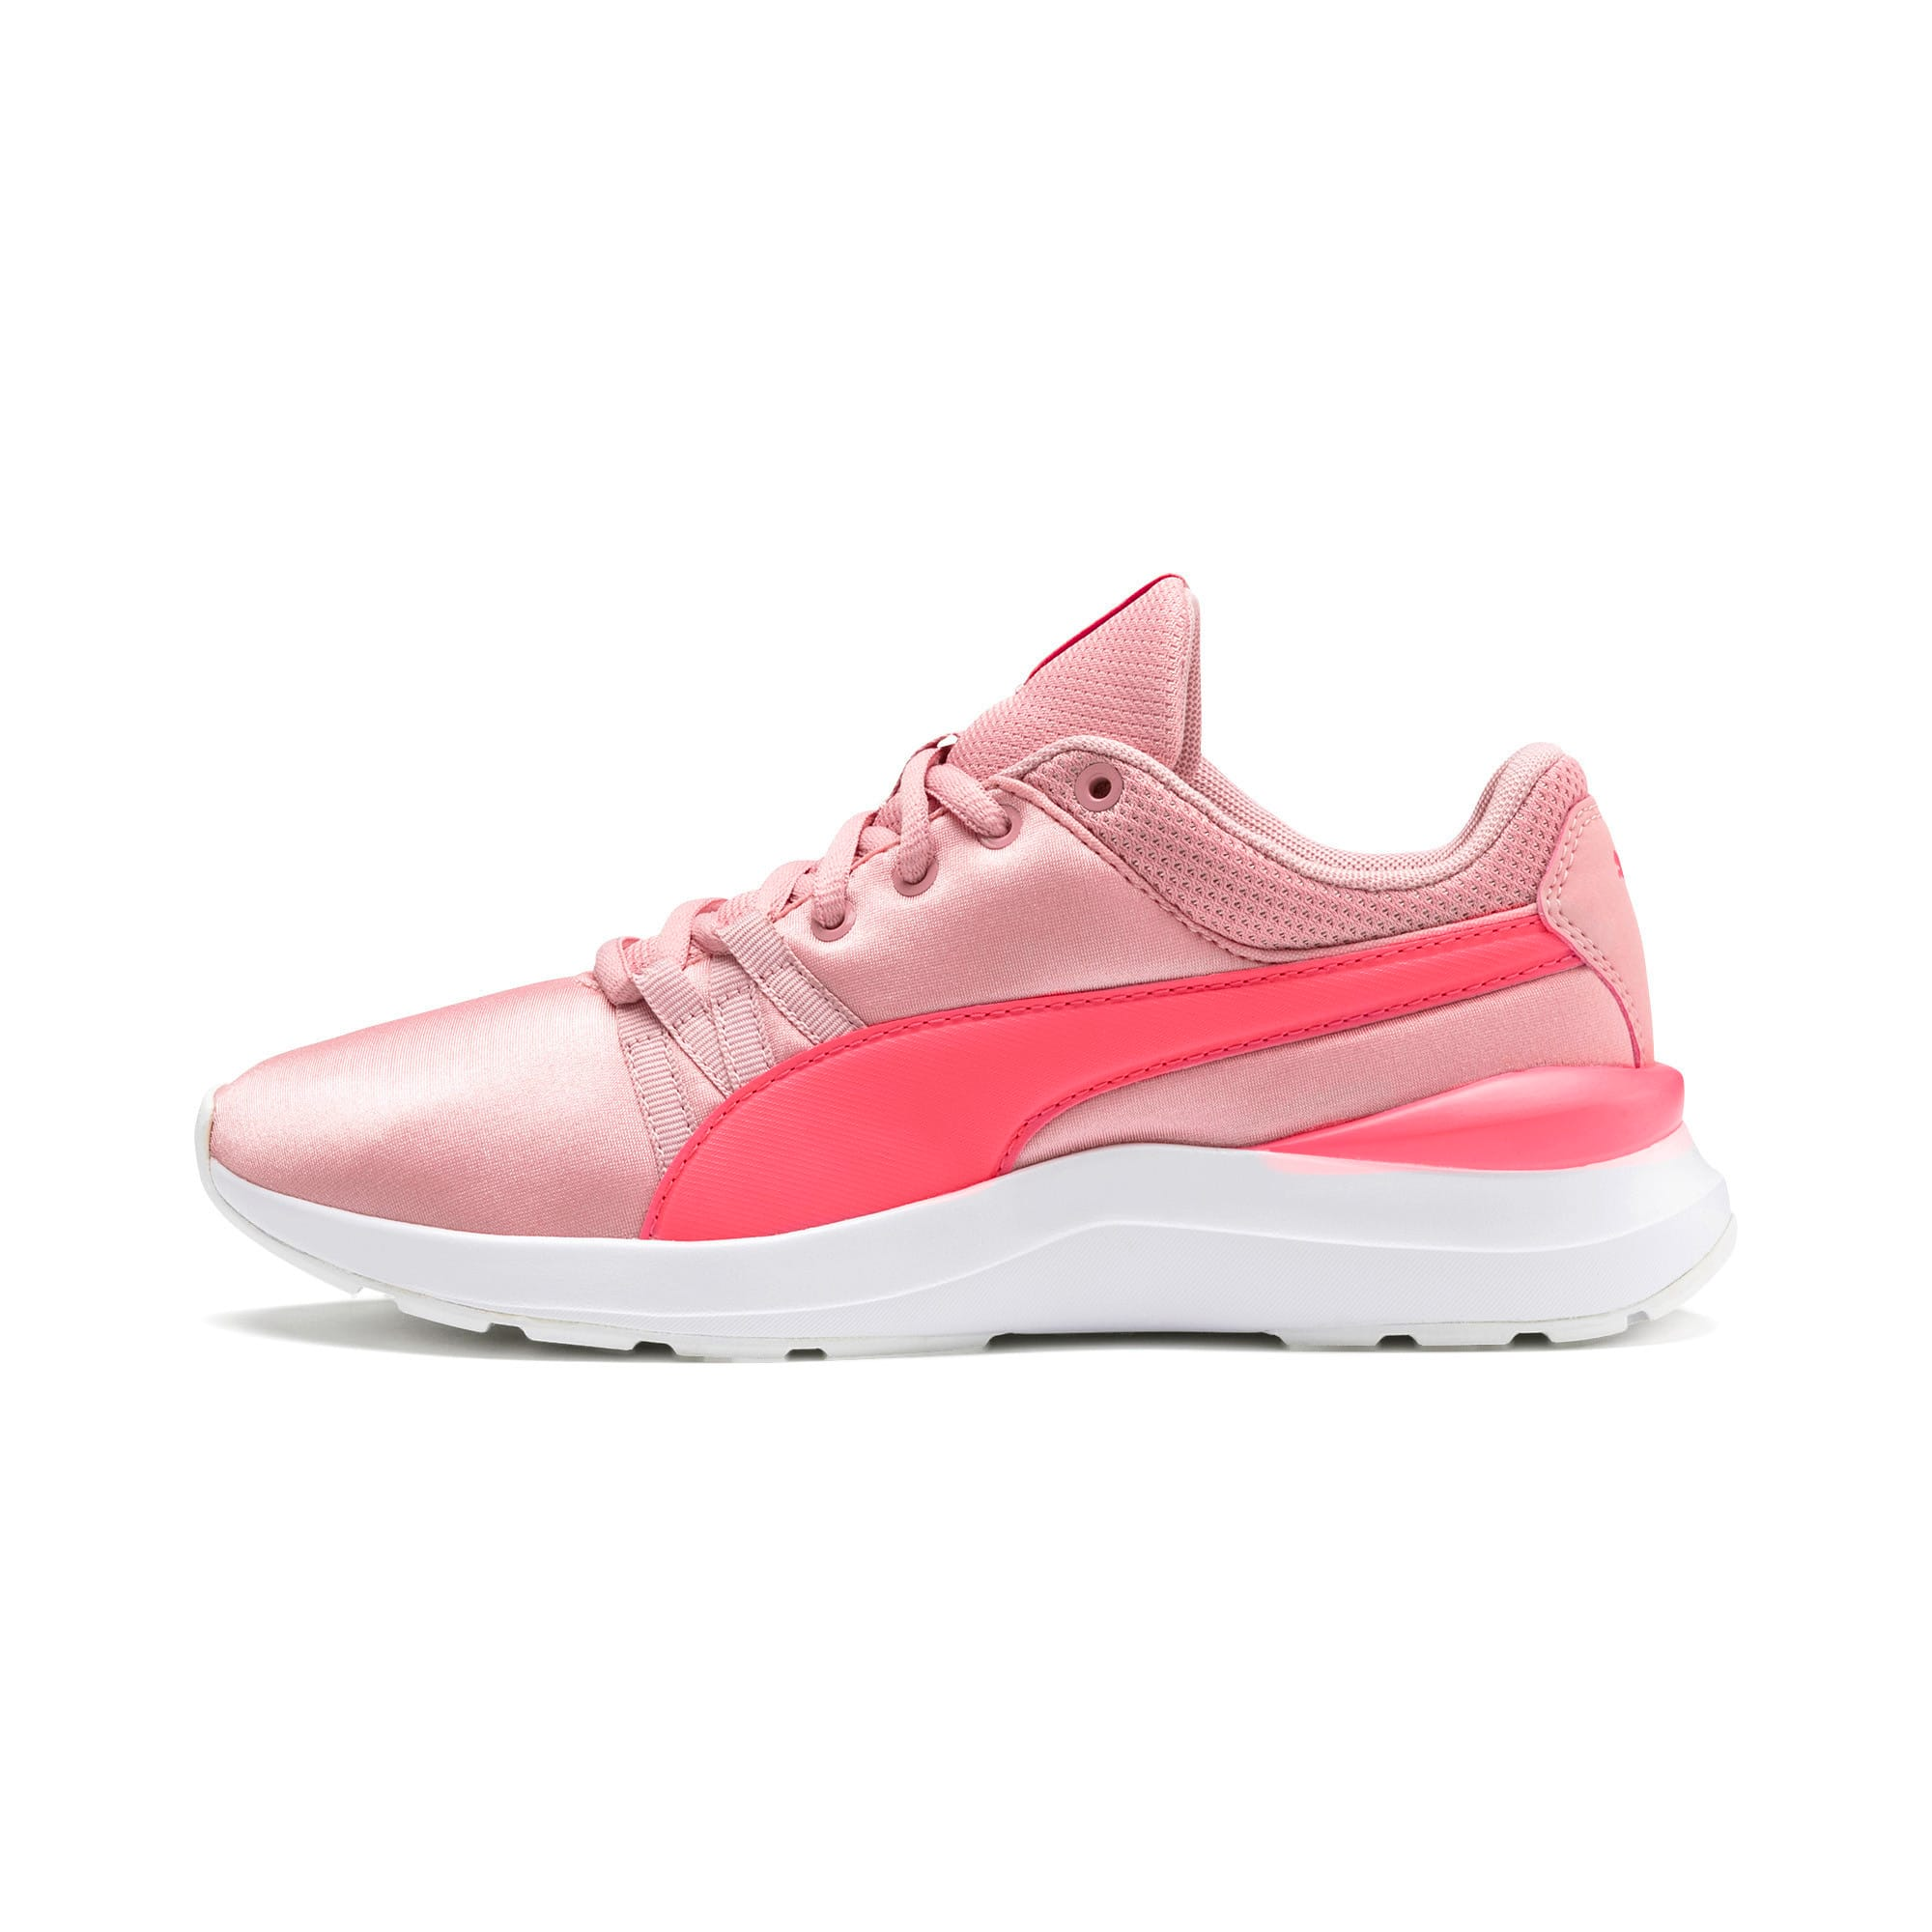 Thumbnail 1 of Adela Satin Girls' Trainers, Bridal Rose-Calypso Coral, medium-IND